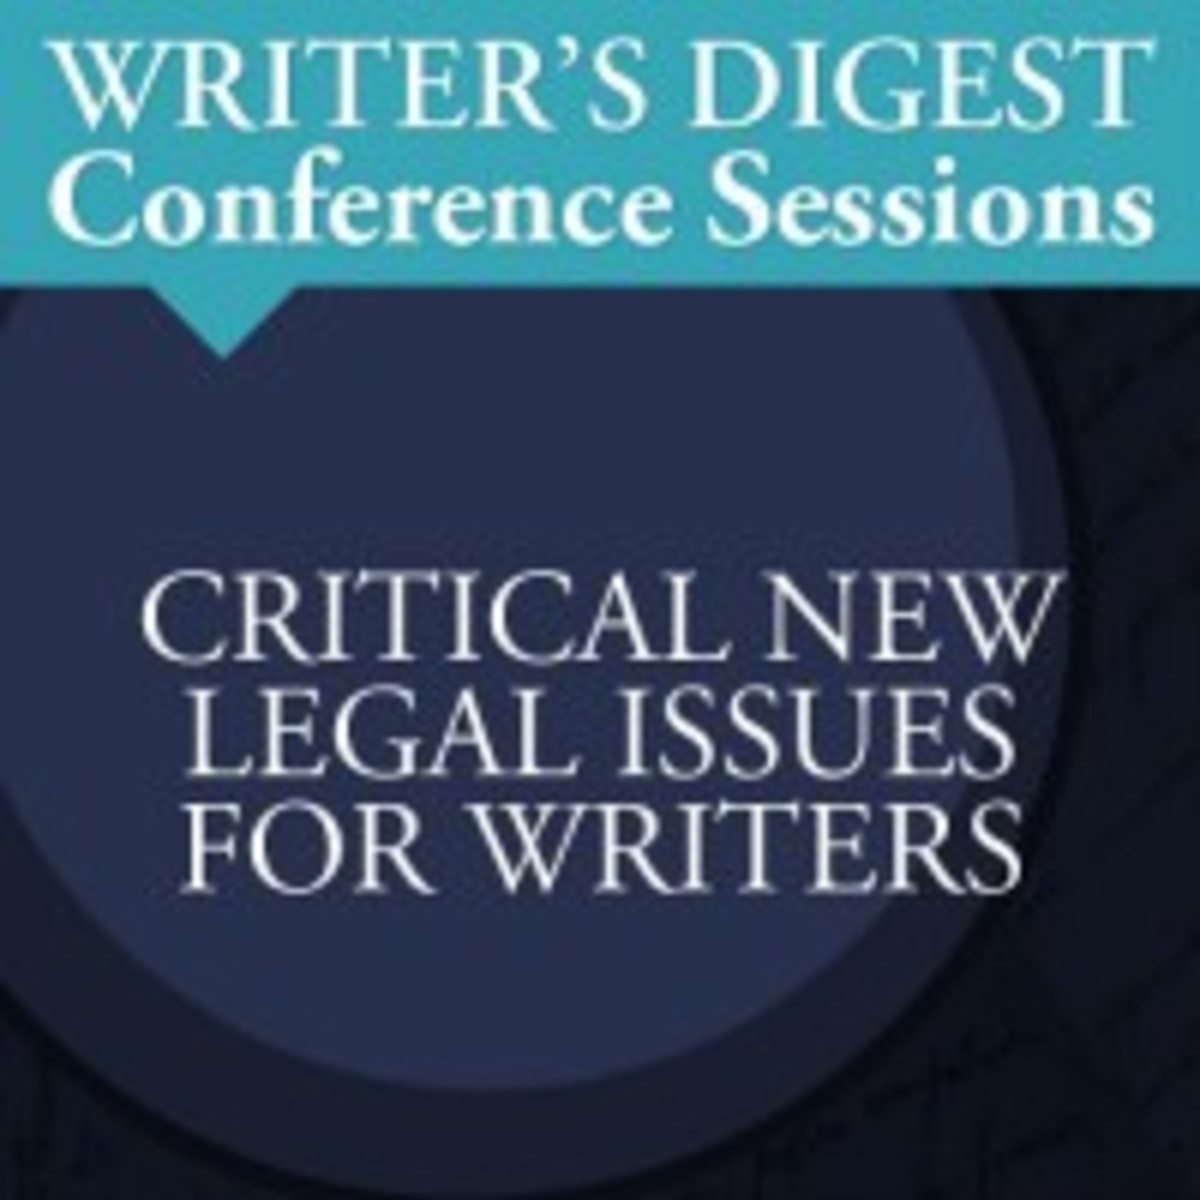 Learn what every author, traditionally published or self-published, needs to know to protect their interests. This Writer's Digest Conference session recording covers what to watch out for when entering into a contract with an agent or publisher, including ebook royalties and subsidiary rights, and answers questions about rights related to writing for online platforms like Red Room, Huffington Post, and others.